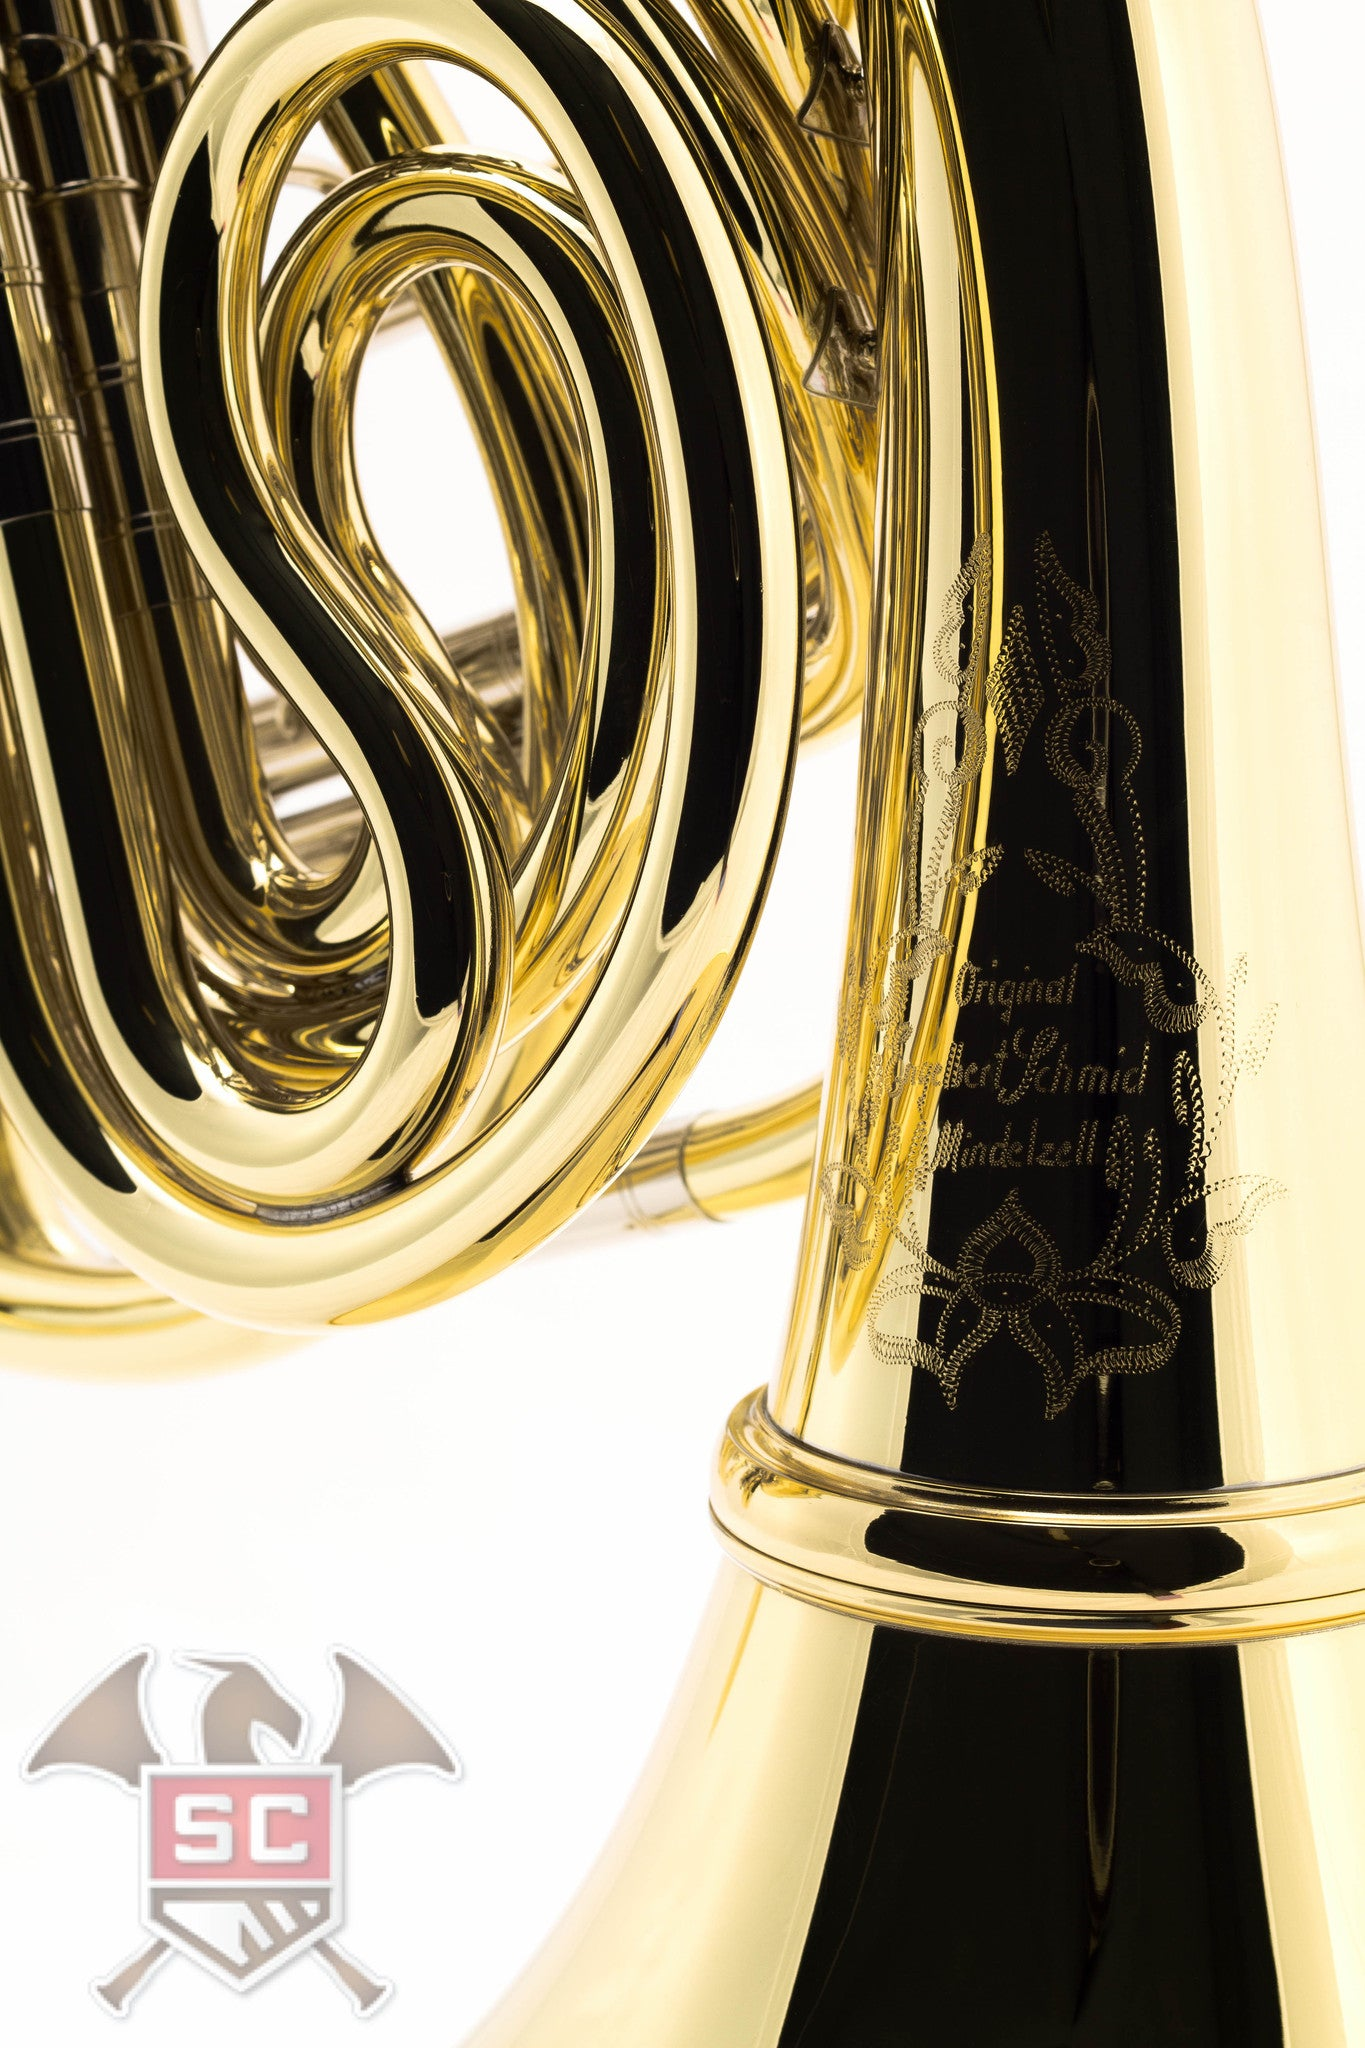 Engelbert Schmid F/Bb/High F Triple Horn